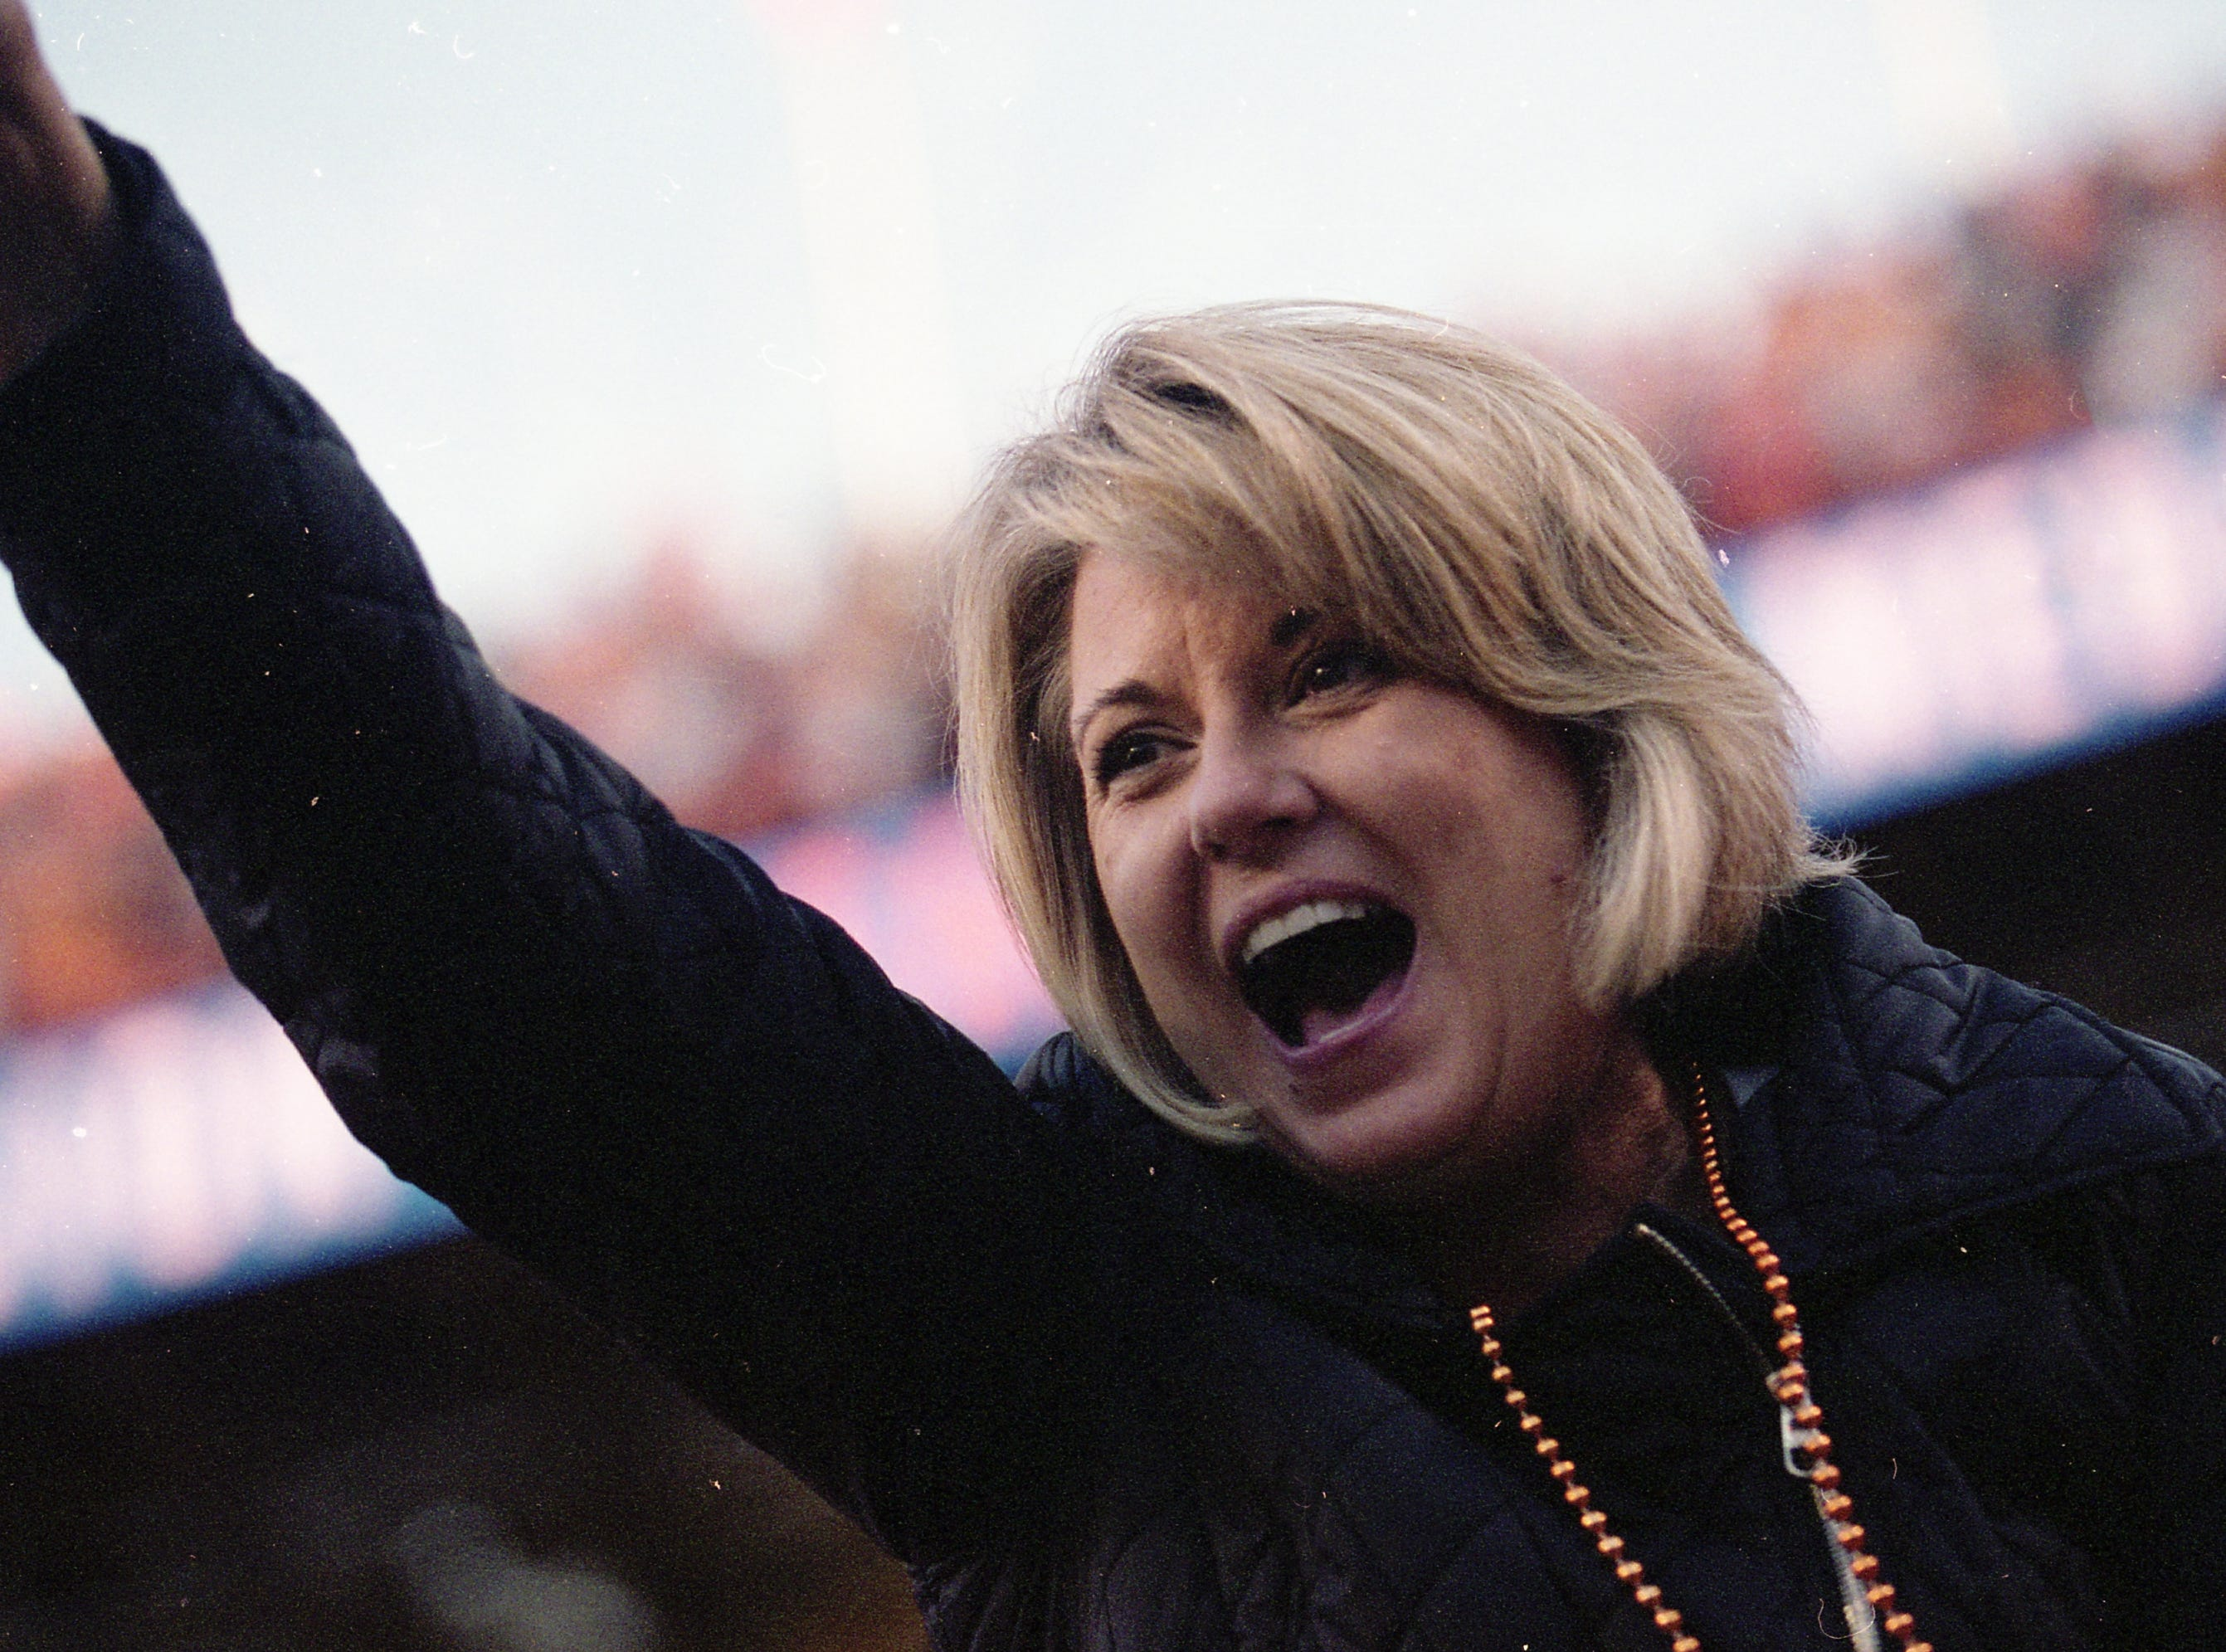 A Vol fan cheers from the stands during a game between Tennessee and Missouri at Neyland Stadium in Knoxville, Tennessee on Saturday, November 17, 2018.